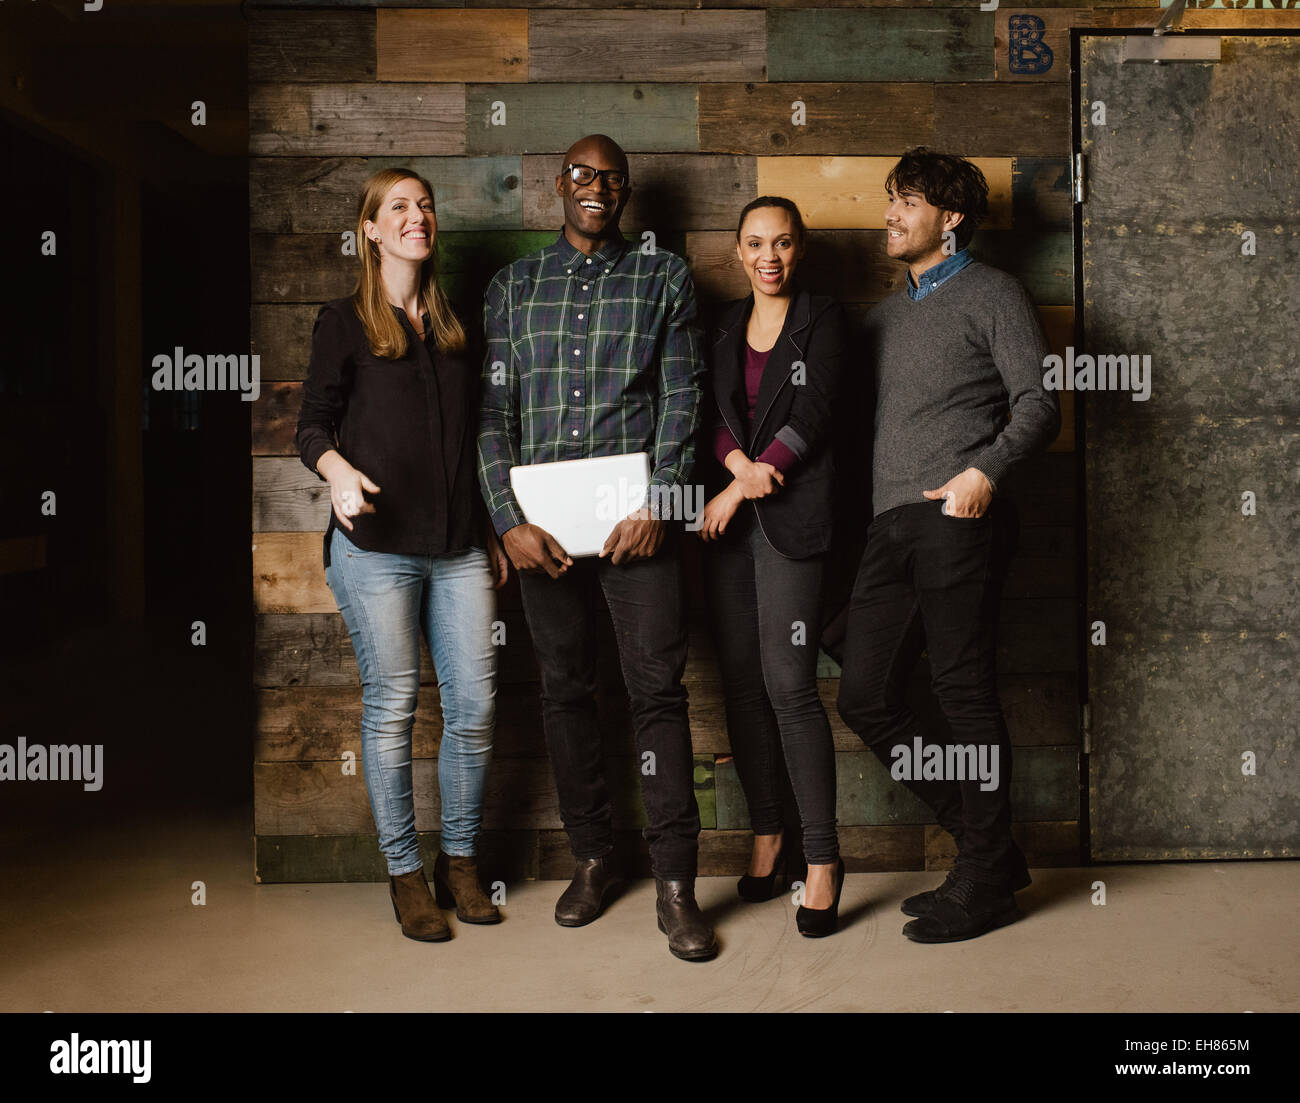 Portrait of young professionals laughing while standing together in office. Multi ethnic business team looking happy - Stock Image